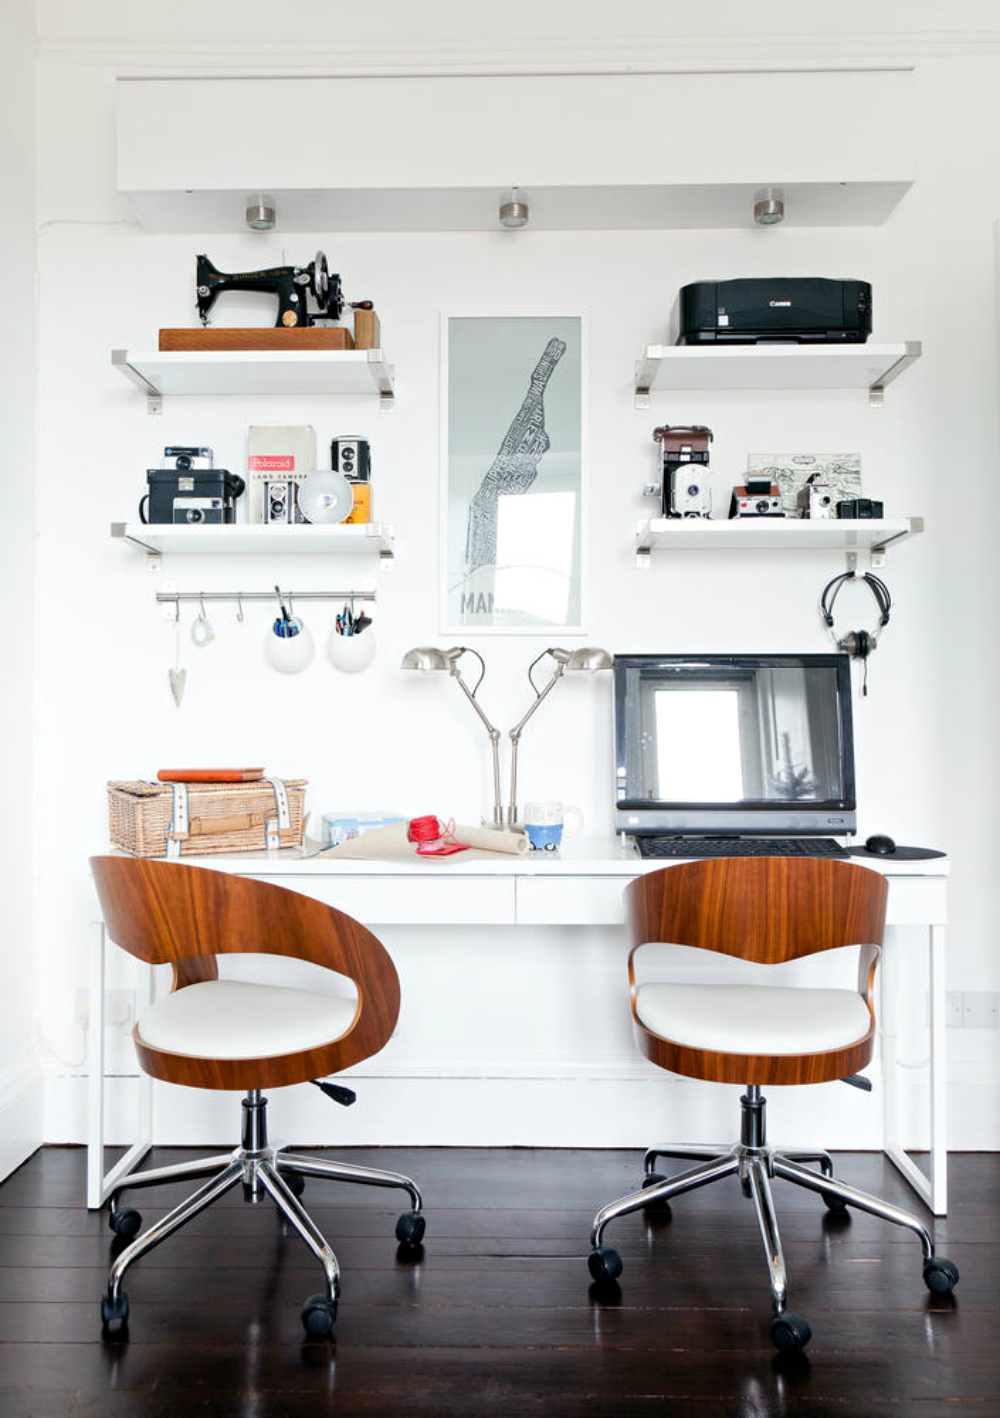 10 Home Office Design Ideas You Should Get Inspired By home office design 10 Home Office Design Ideas You Should Get Inspired By 10 Home Office Design Ideas You Should Get Inspired By vintage